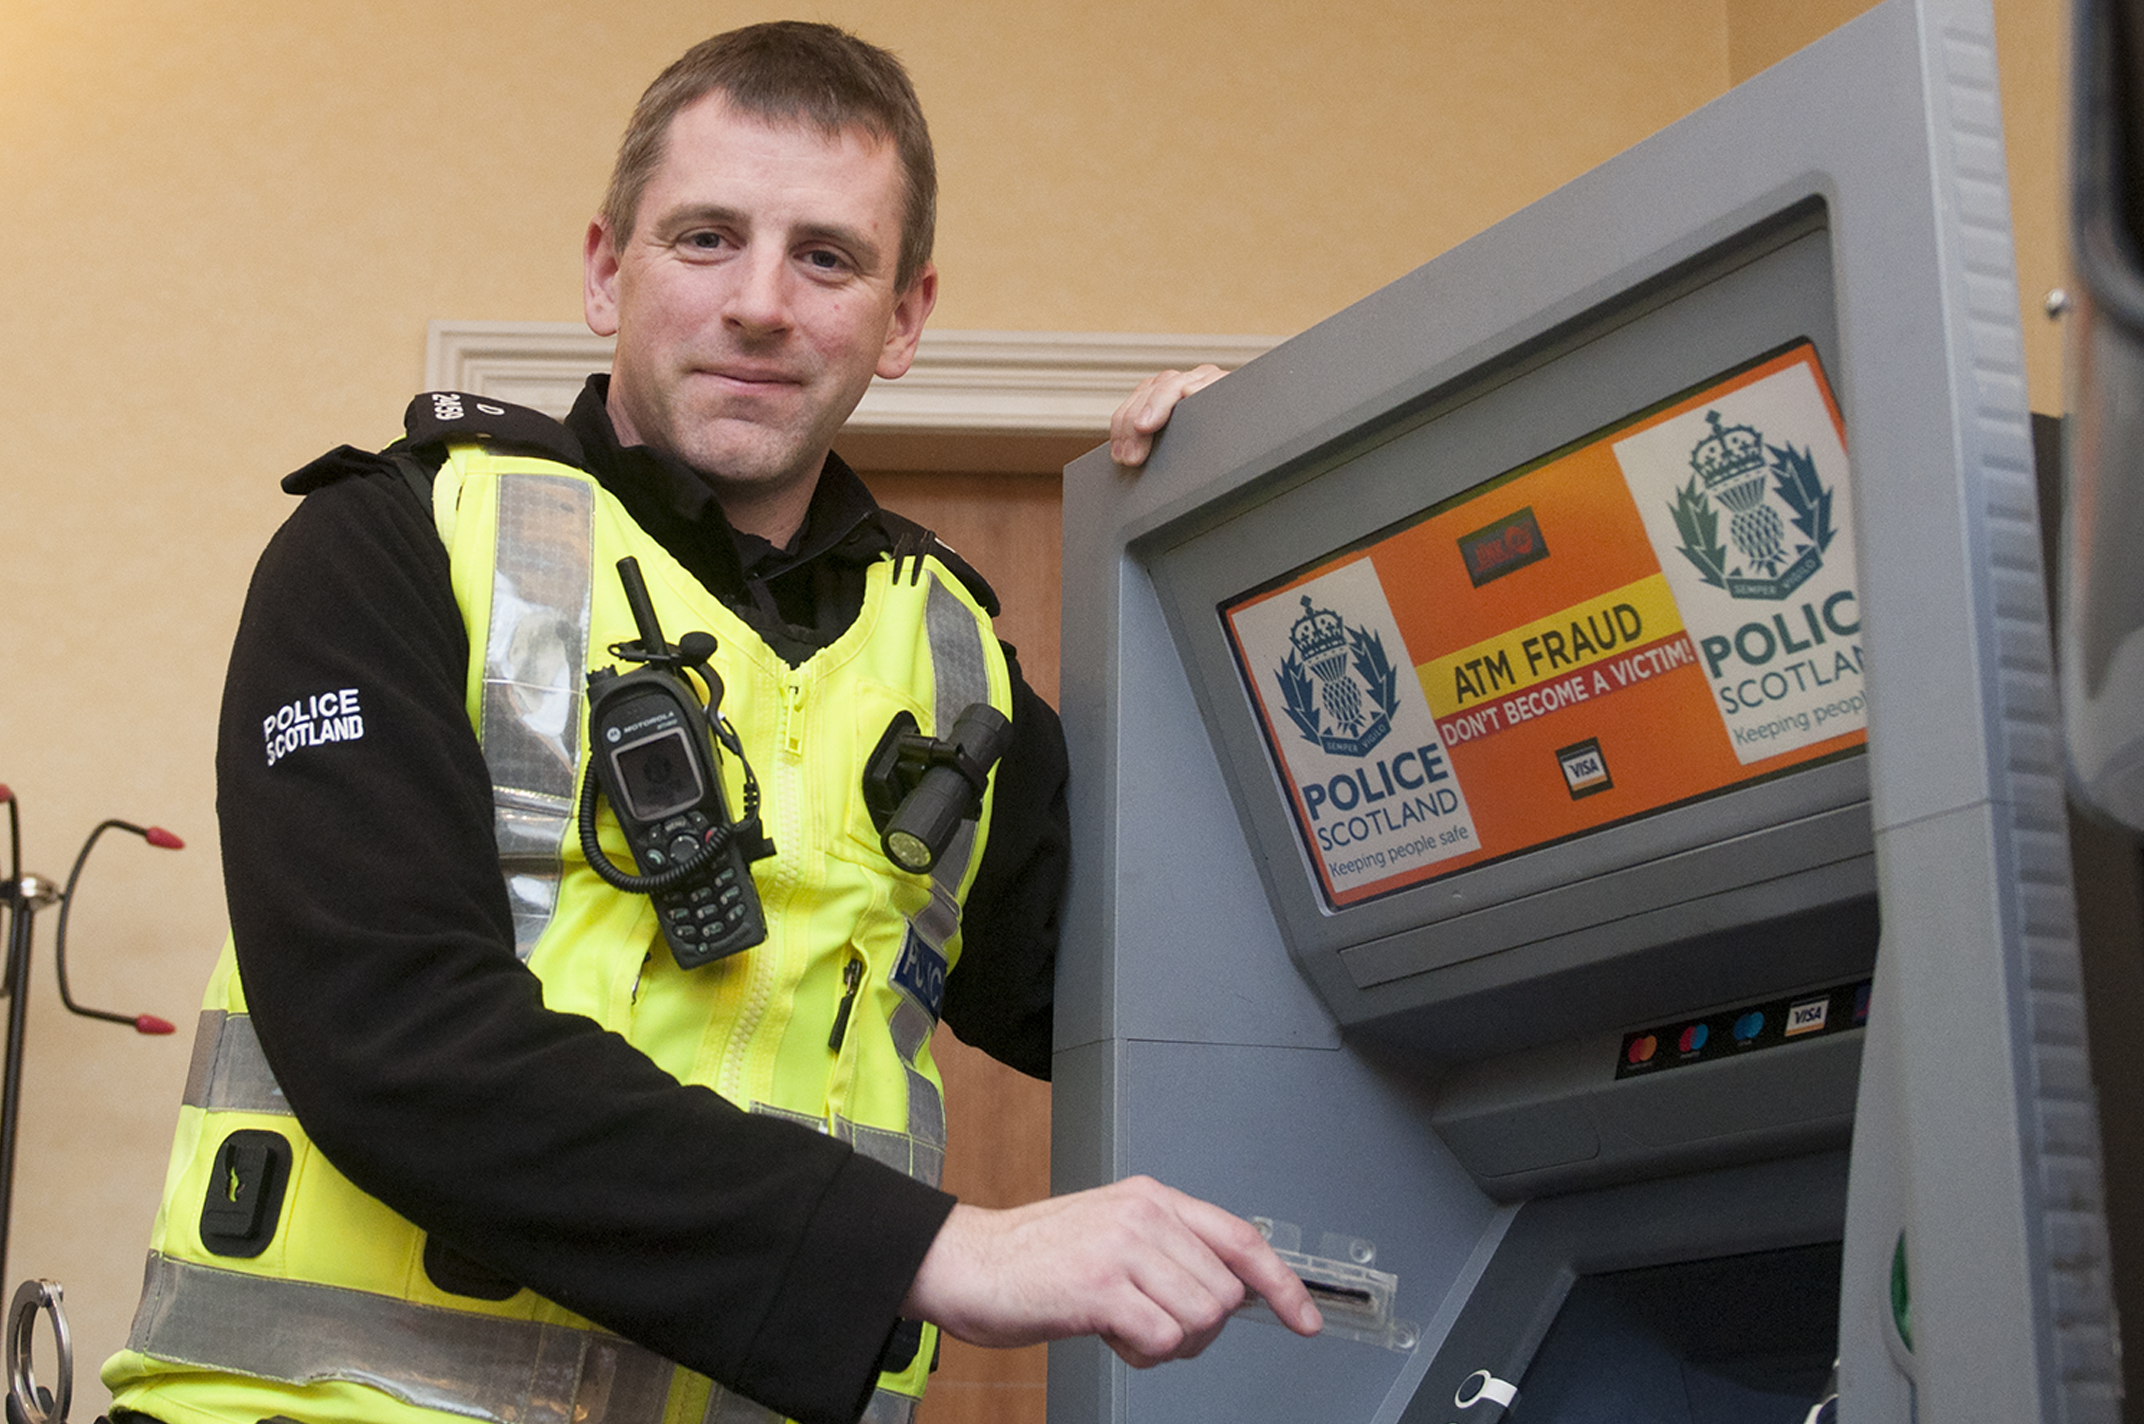 Community police officer, Scott Anderson, demonstrates ATM scams at the pop-up event